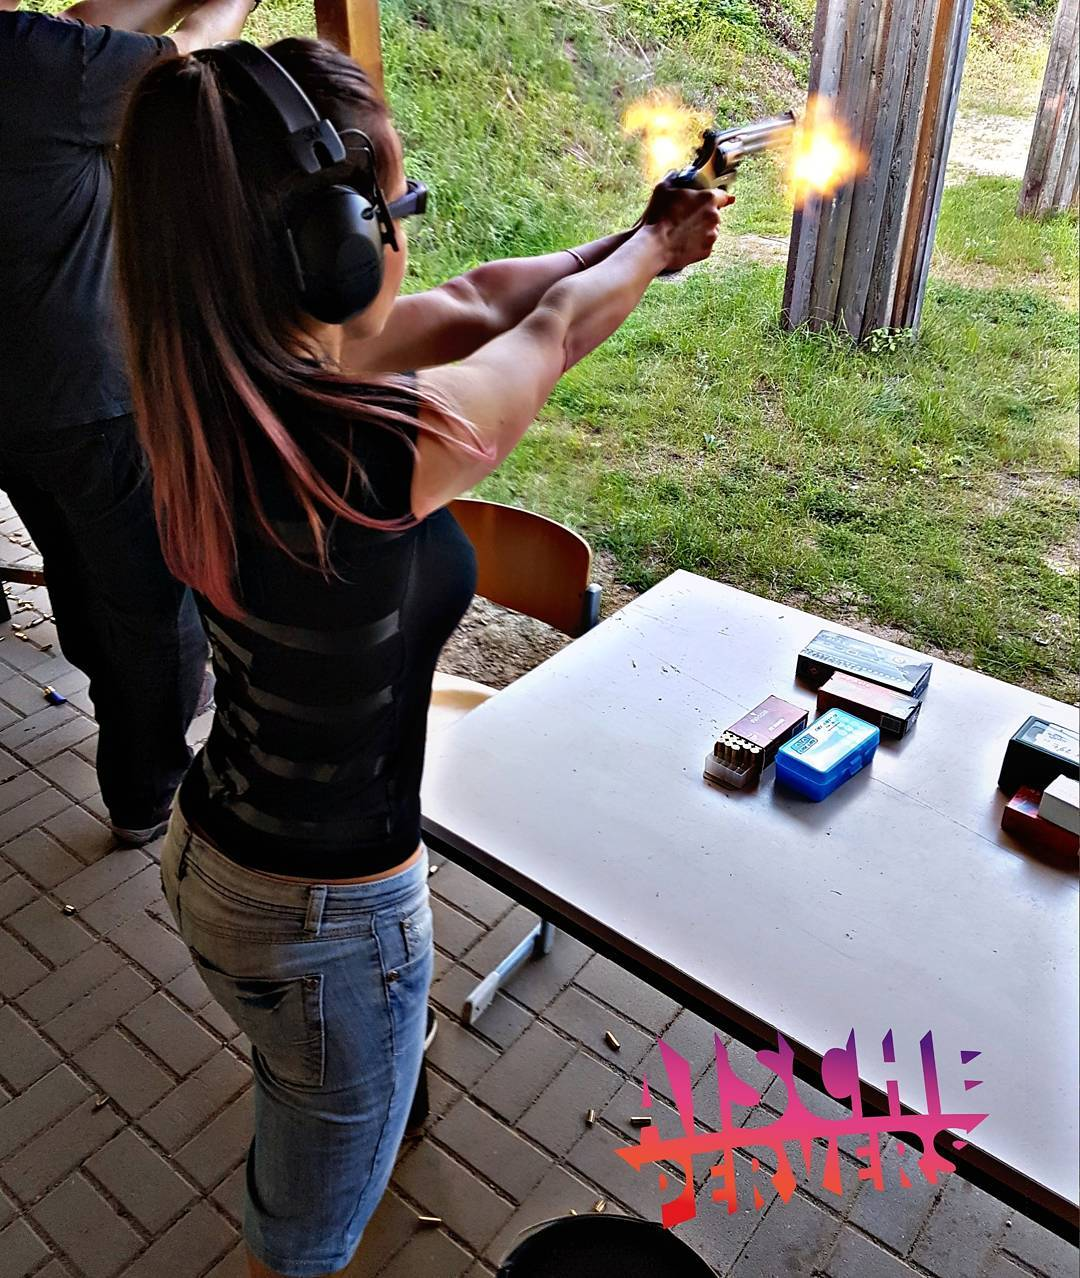 A smile will get you pretty far….. but a smile and a gun will get you farther! (Al Capone) #gun #44magnum #magnum #revolver #colt #model #rangers #army #military #badass #combat #strength #navy #grunt #sacrifice #pride #freedom #firearms #readyforit #boom #german #germangirl #girl #longhair #girlswithagun